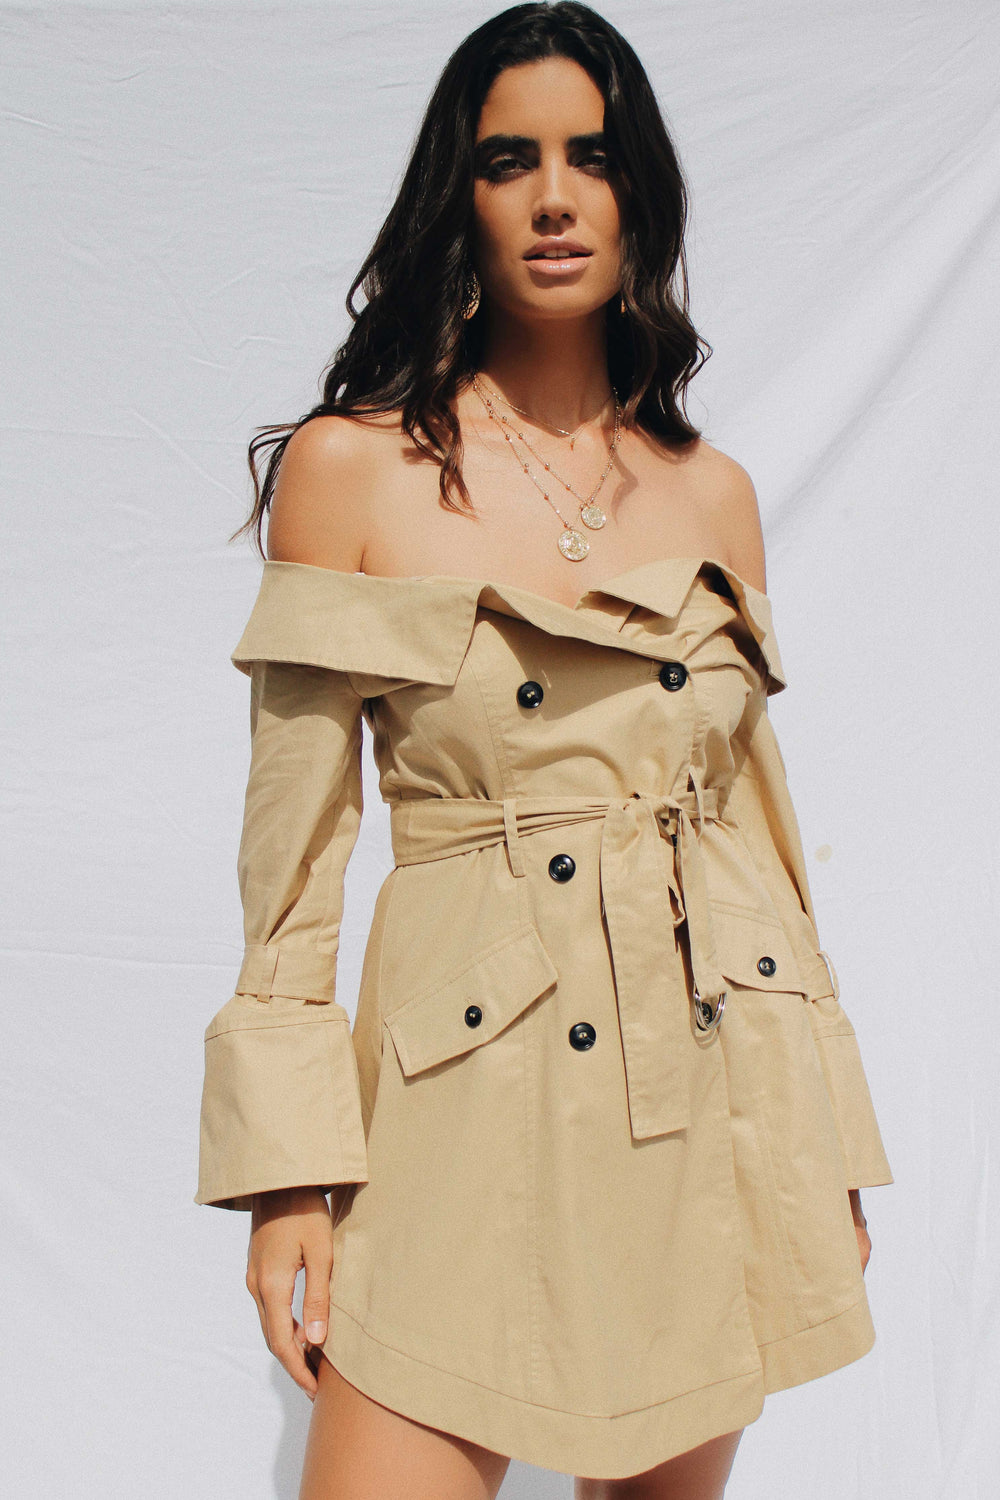 KIARA TRENCH COAT | Women's Online Shopping | CHICLEFRIQUE  (1965789708377)